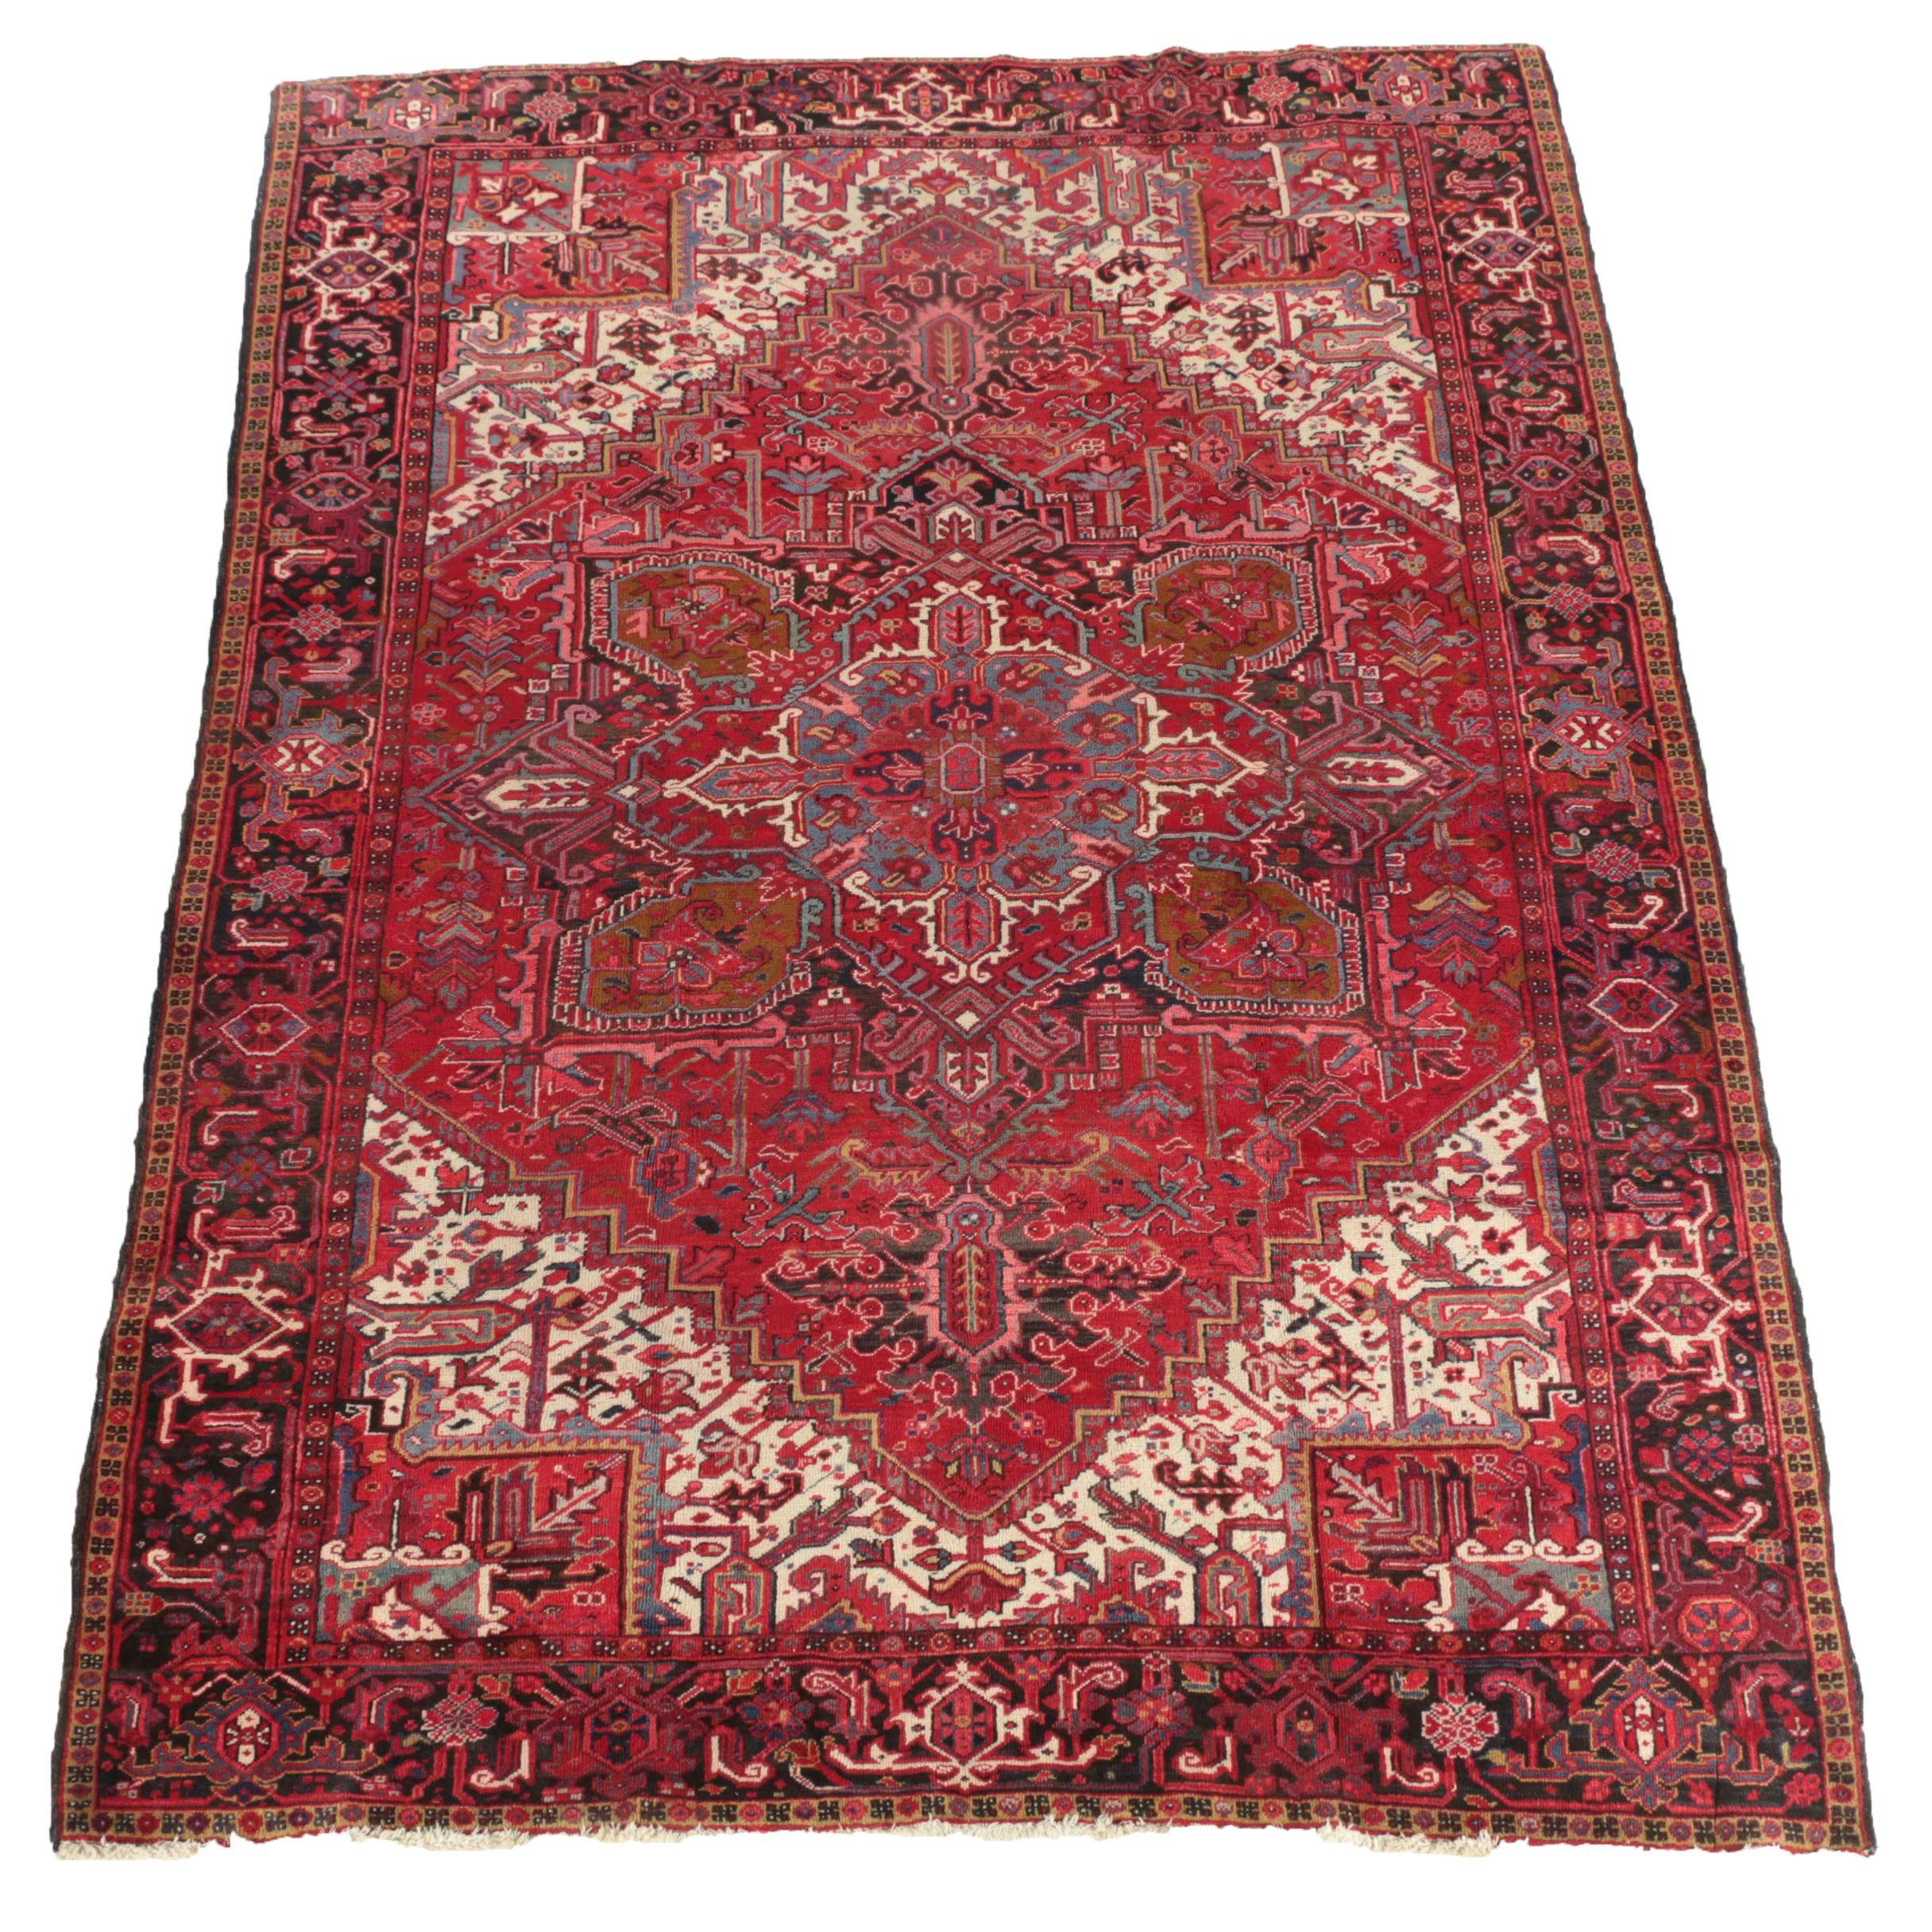 Hand-Knotted Persian Heriz Serapi Wool Room Sized Rug